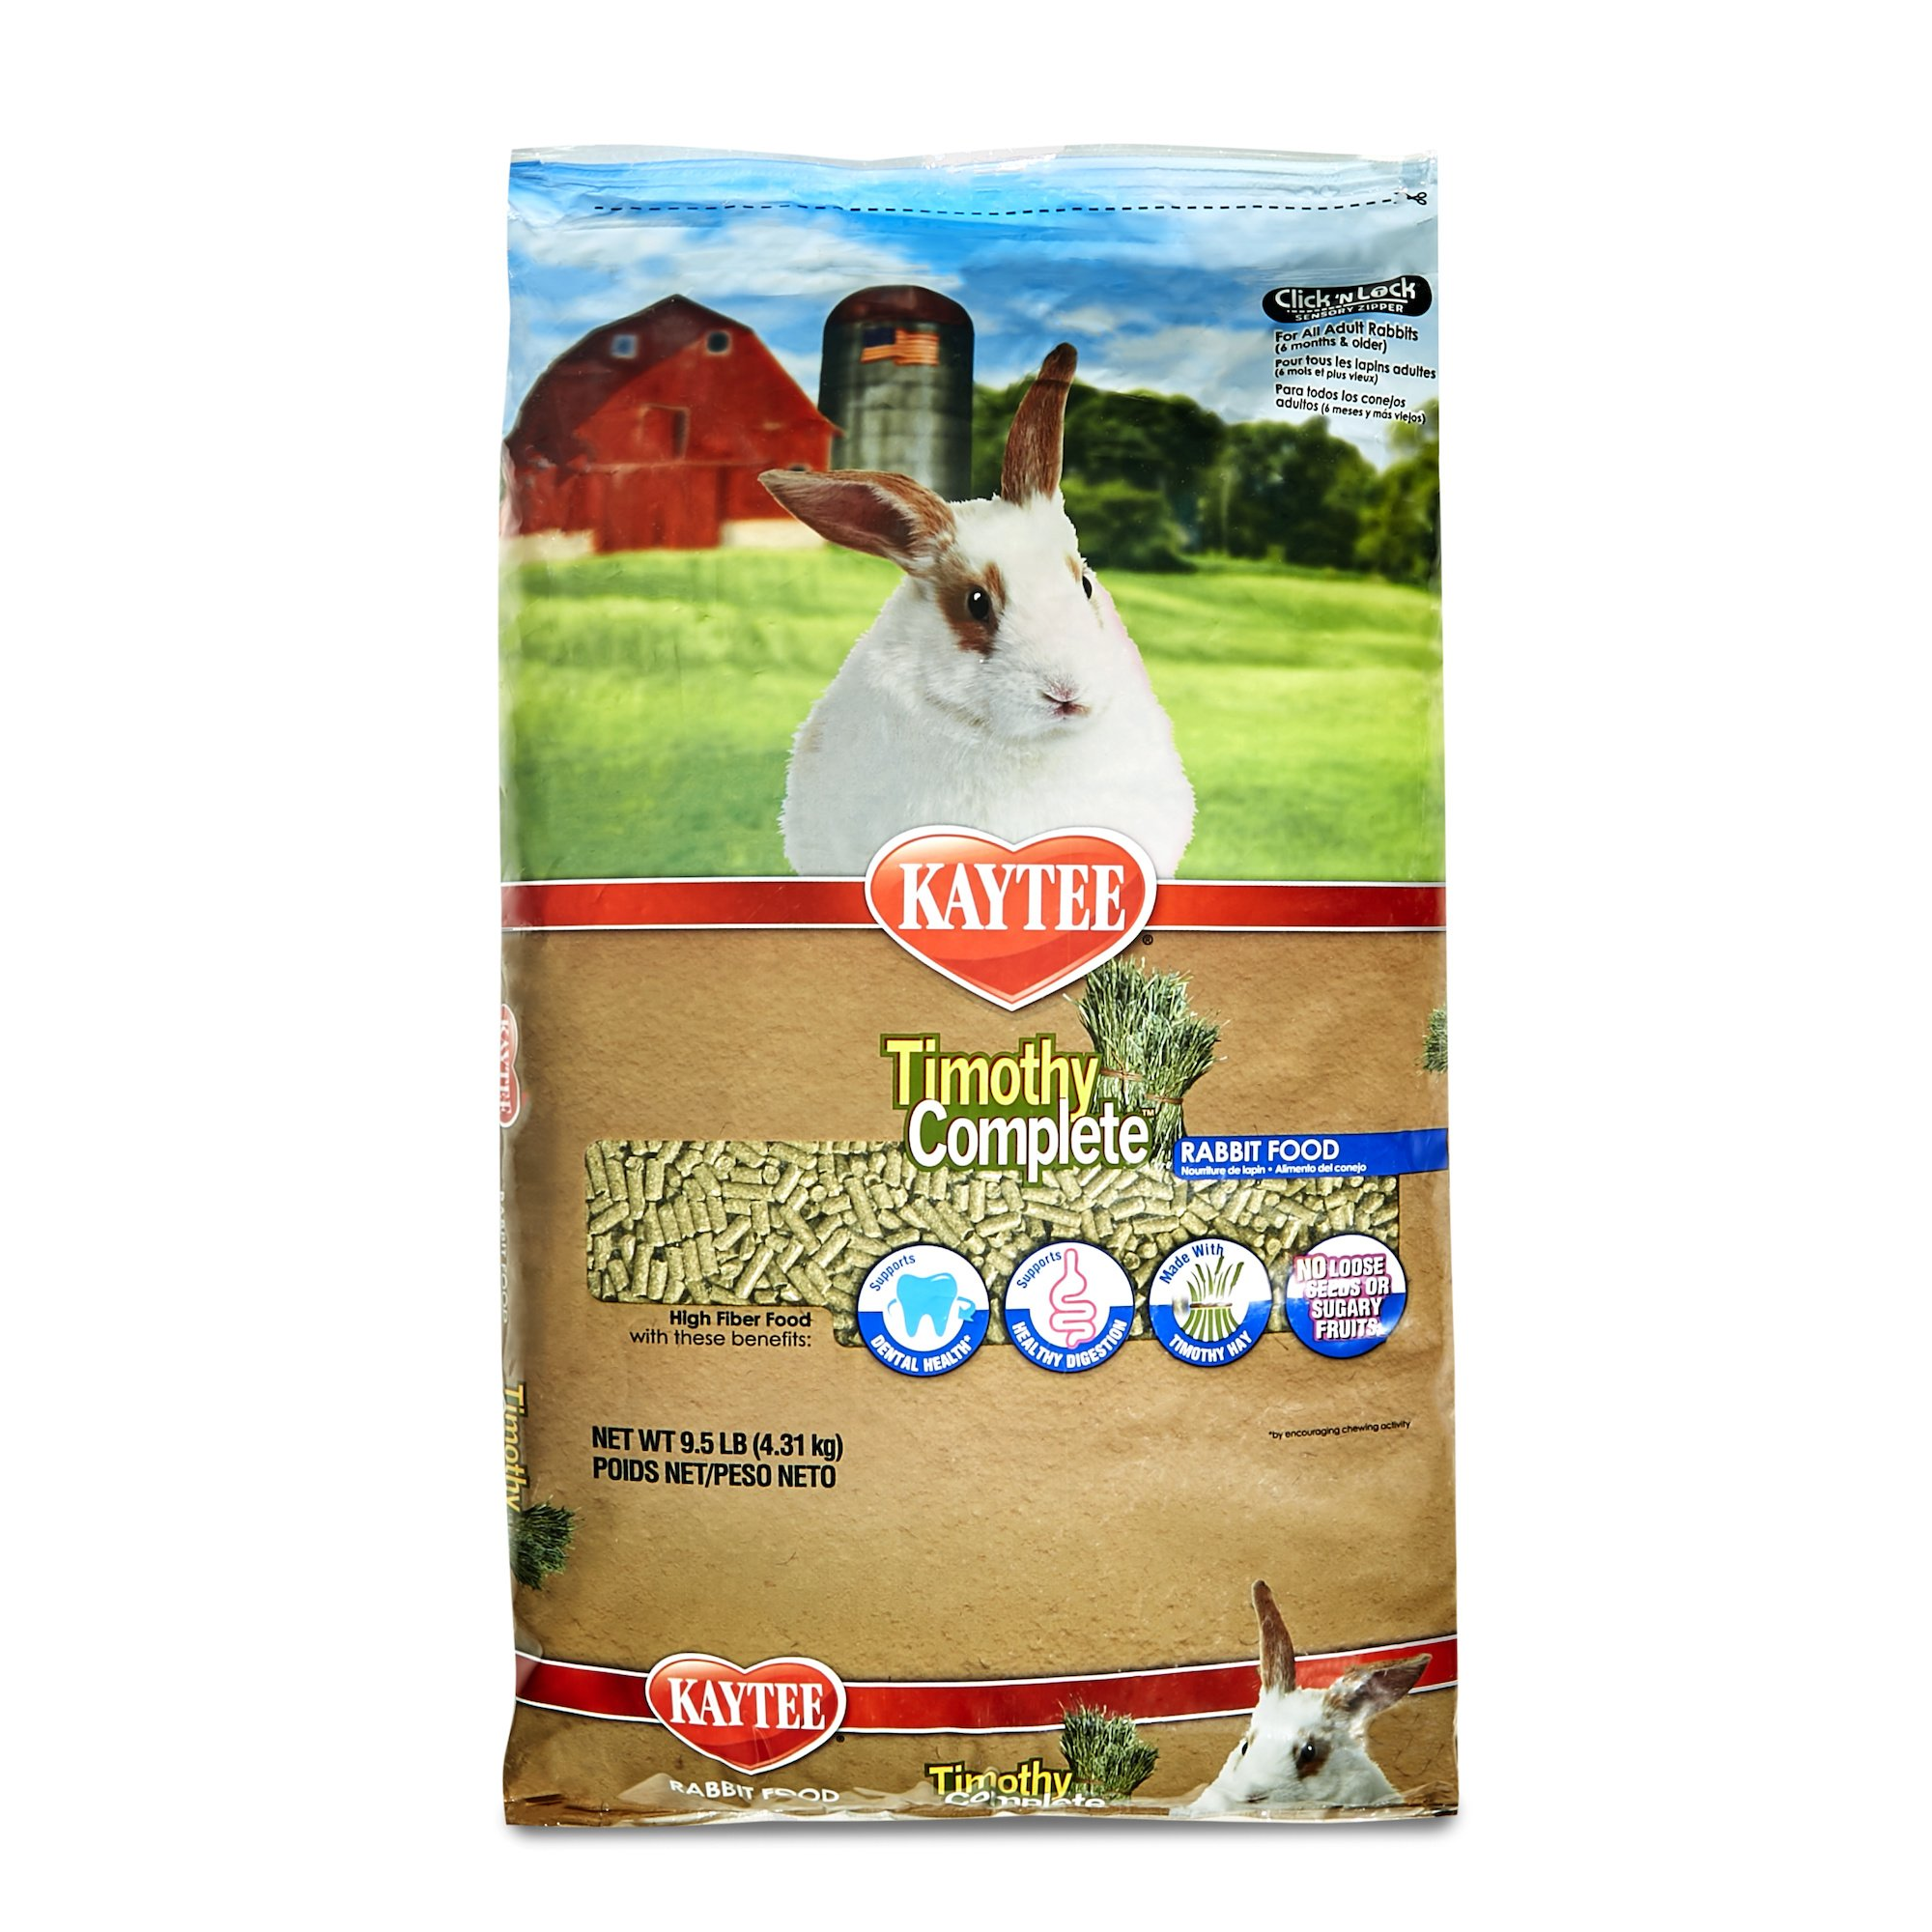 Kaytee Timothy Complete Rabbit Food 9.5 pounds by Kaytee